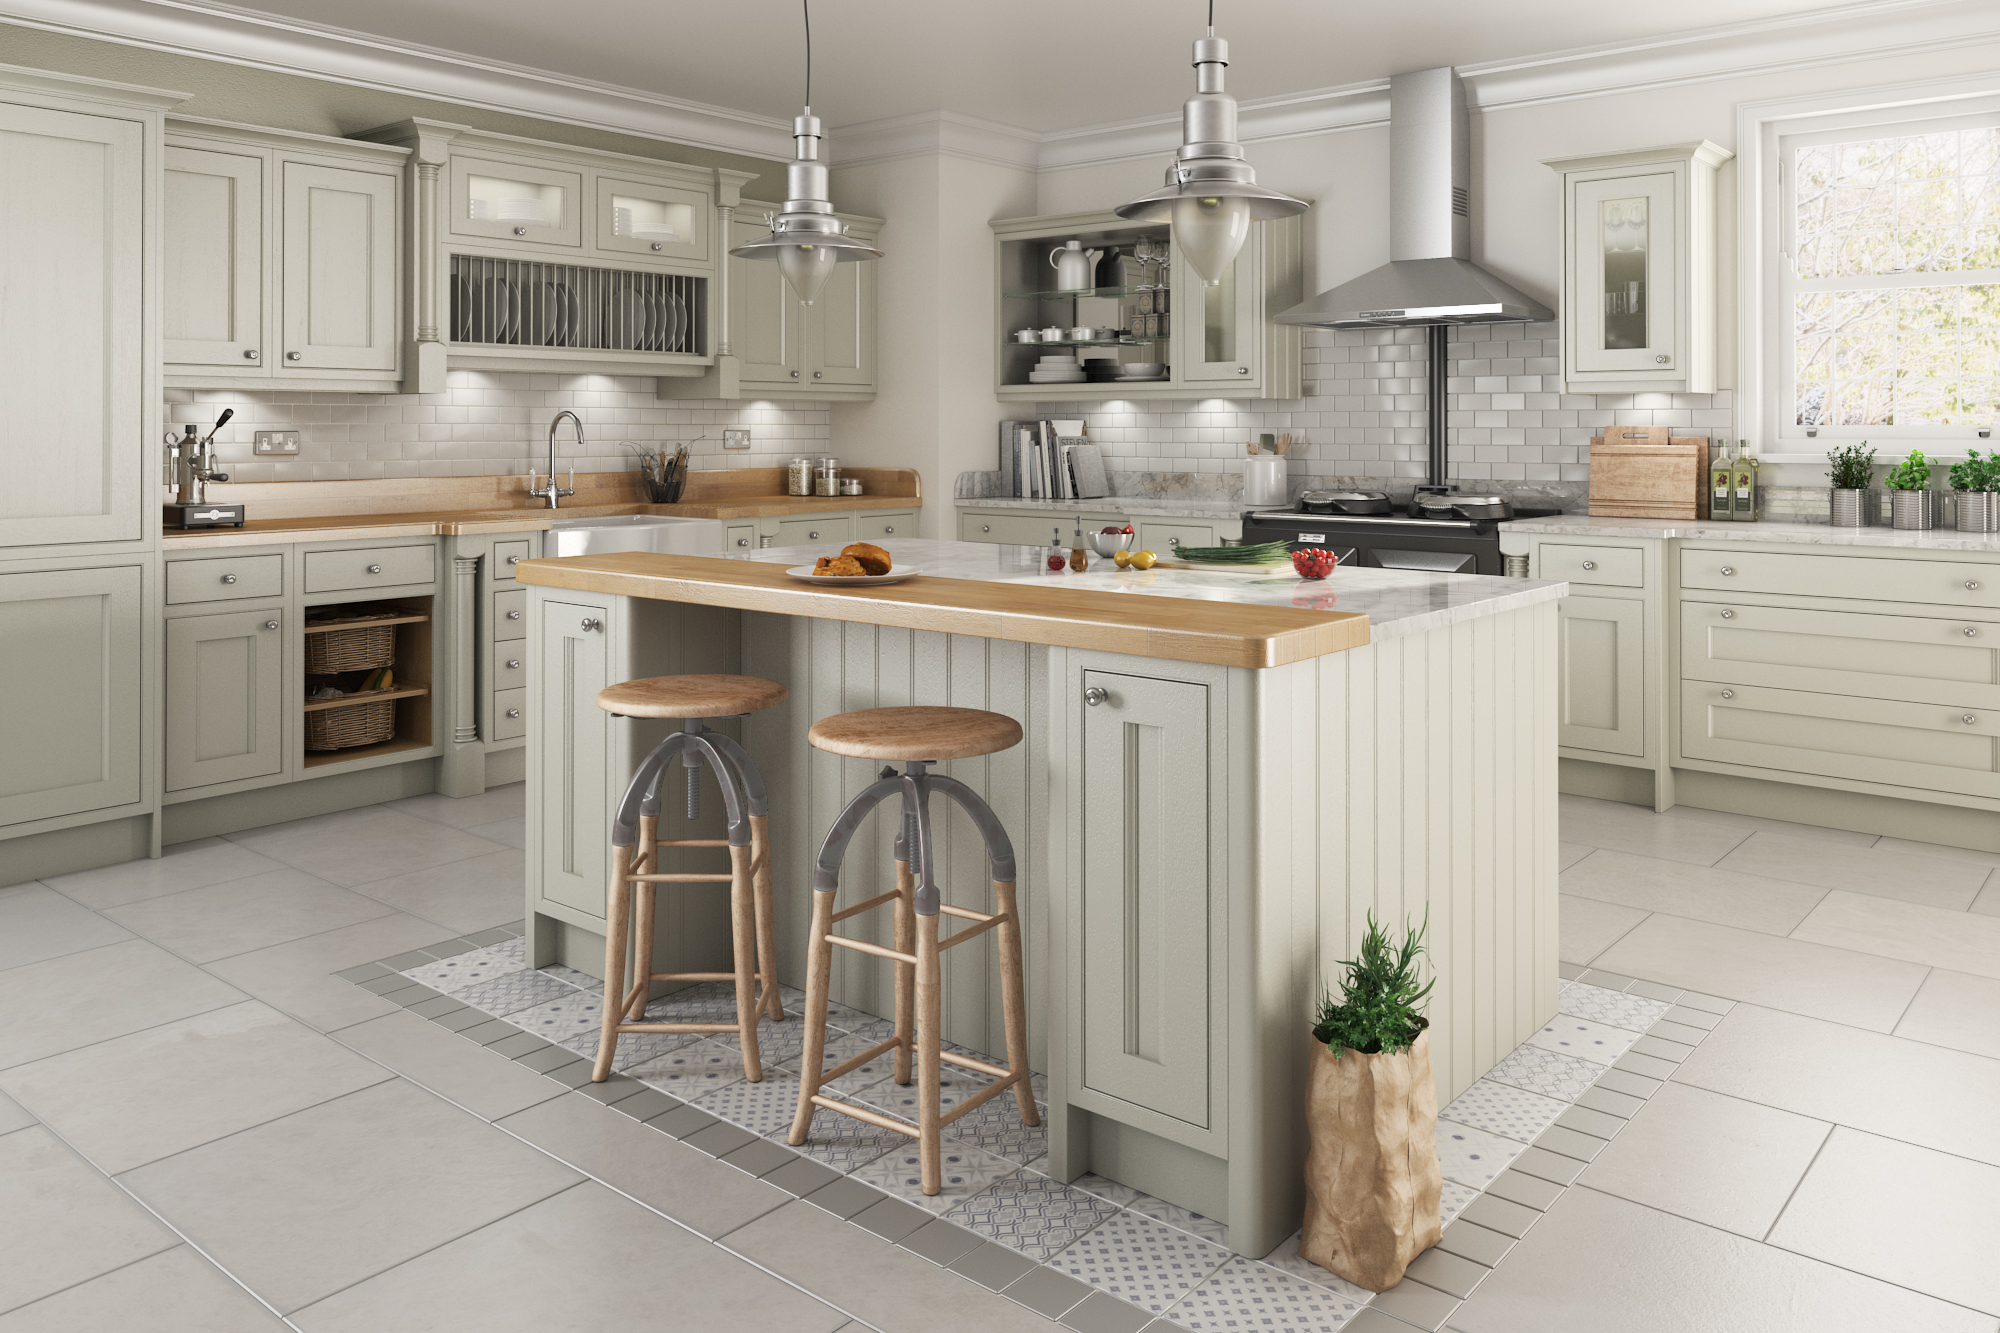 A Frame Kitchen Designs Traditional In Frame Kitchen Design Painted Kitchens